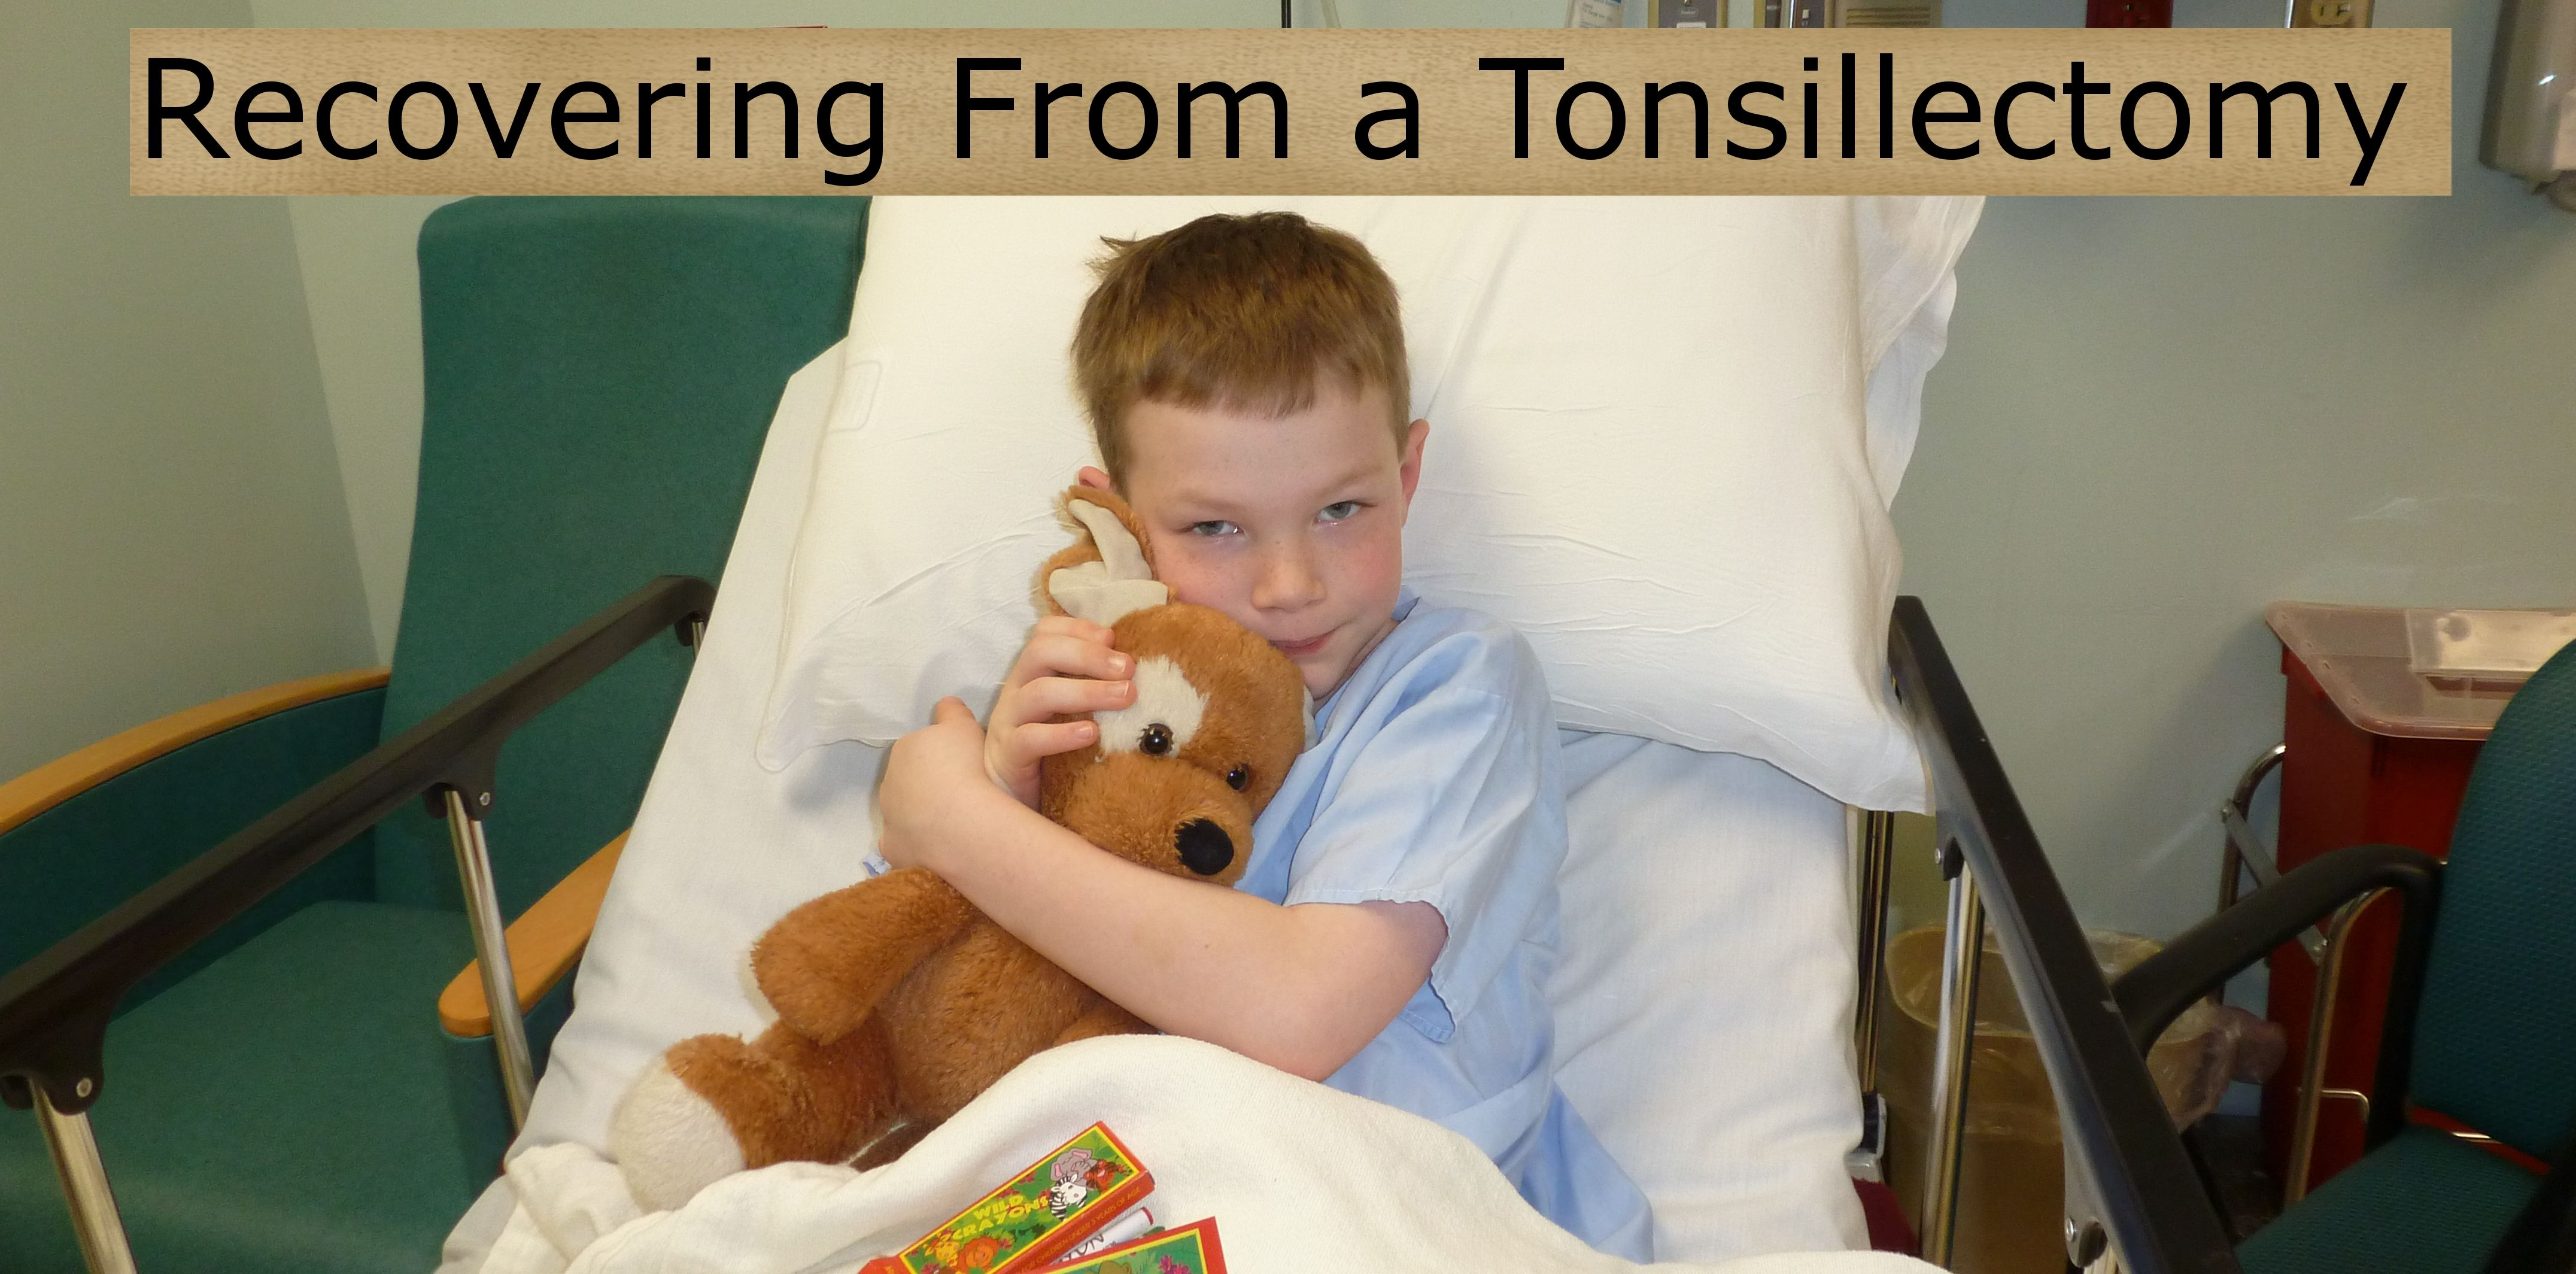 Pain after tonsillectomy child-7246